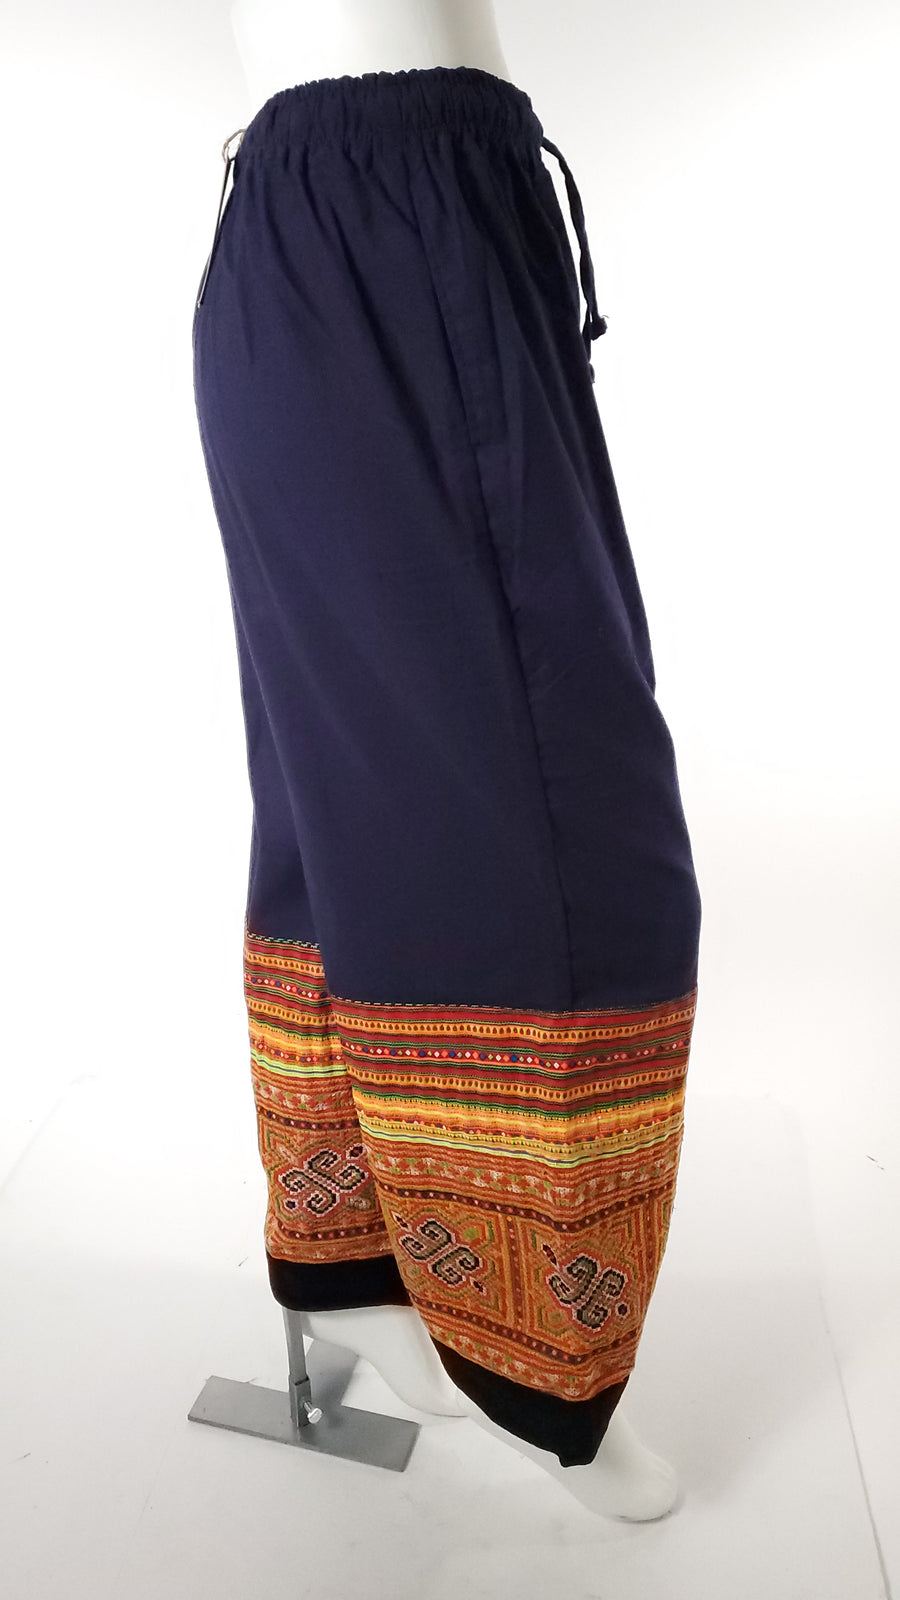 Upcycled Tribal Fabric Pants in Navy Blue-The High Thai-The High Thai-Yoga Pants-Harem Pants-Hippie Clothing-San Diego